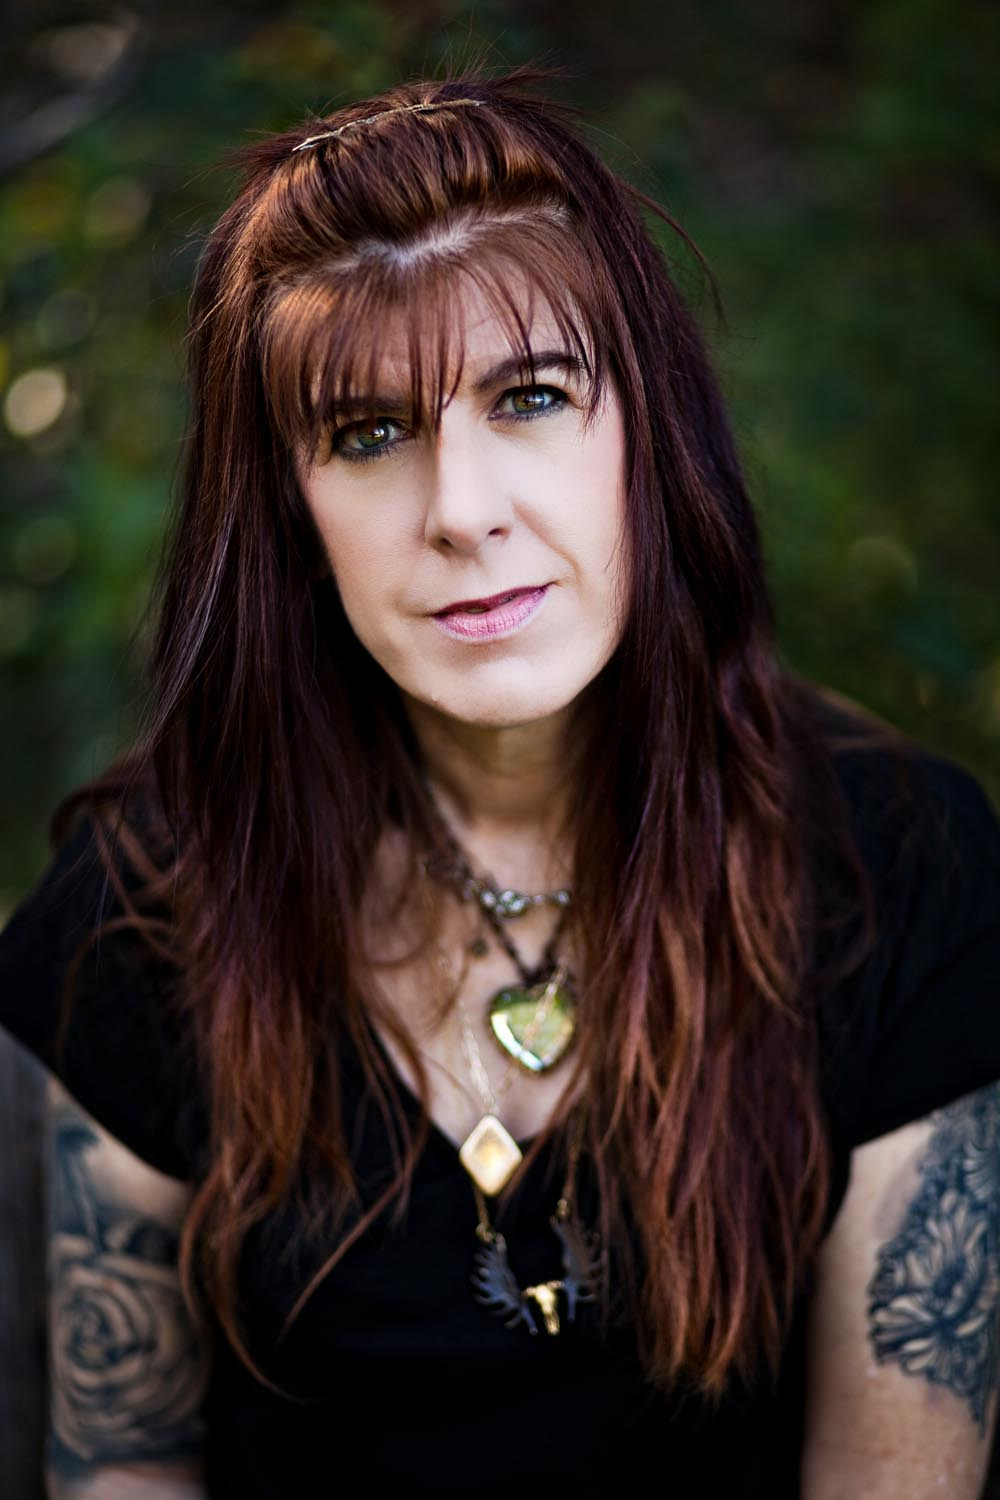 """I met Brenda Hughes in Austin in November 2013. Everything about her struck me, from her eyes, to her tattoos, to her ability to drop Bible quotes like a boss, to her immense, radiating kindness to, of course, her incredible story of resilience.  I stay in touch with about 95% of the people who have been a part of Live Through This. When we meet, we're not just talking about suicide, about how we each fought through our own sea of darkness. That's an entry point, a place of mutual understanding between survivor and artist(/survivor). We talk about life, about what happens after. We laugh. We're fast friends.  Brenda writes these amazing stories on Facebook—little anecdotes about her life. She ends every single one with, """"I love you, I need you,"""" to remind her people that they are worthy, that they are valued, that they are necessary, that they're not alone. Because we all forget sometimes.Sometimes we need a reminder, a spark of light, a nod of understanding, a Brenda.  Dec 5, 2015"""